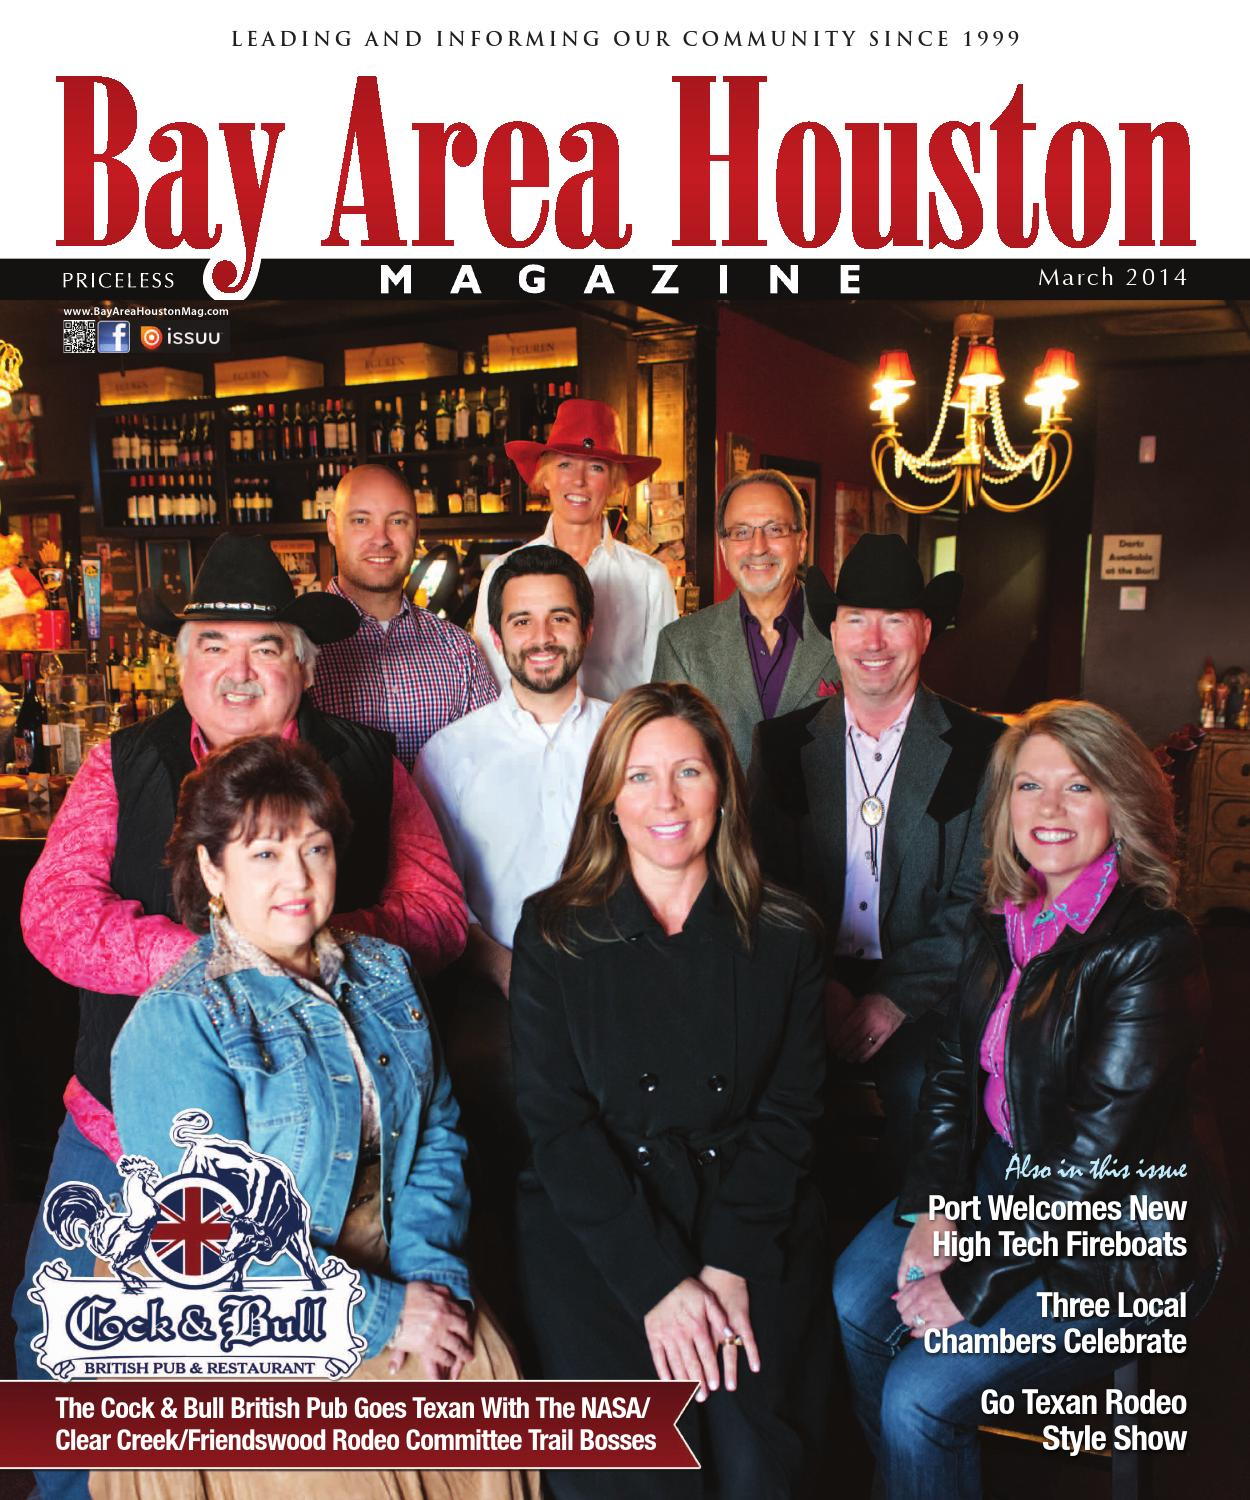 bay area houston magazine march 2014 by bay group media. Black Bedroom Furniture Sets. Home Design Ideas